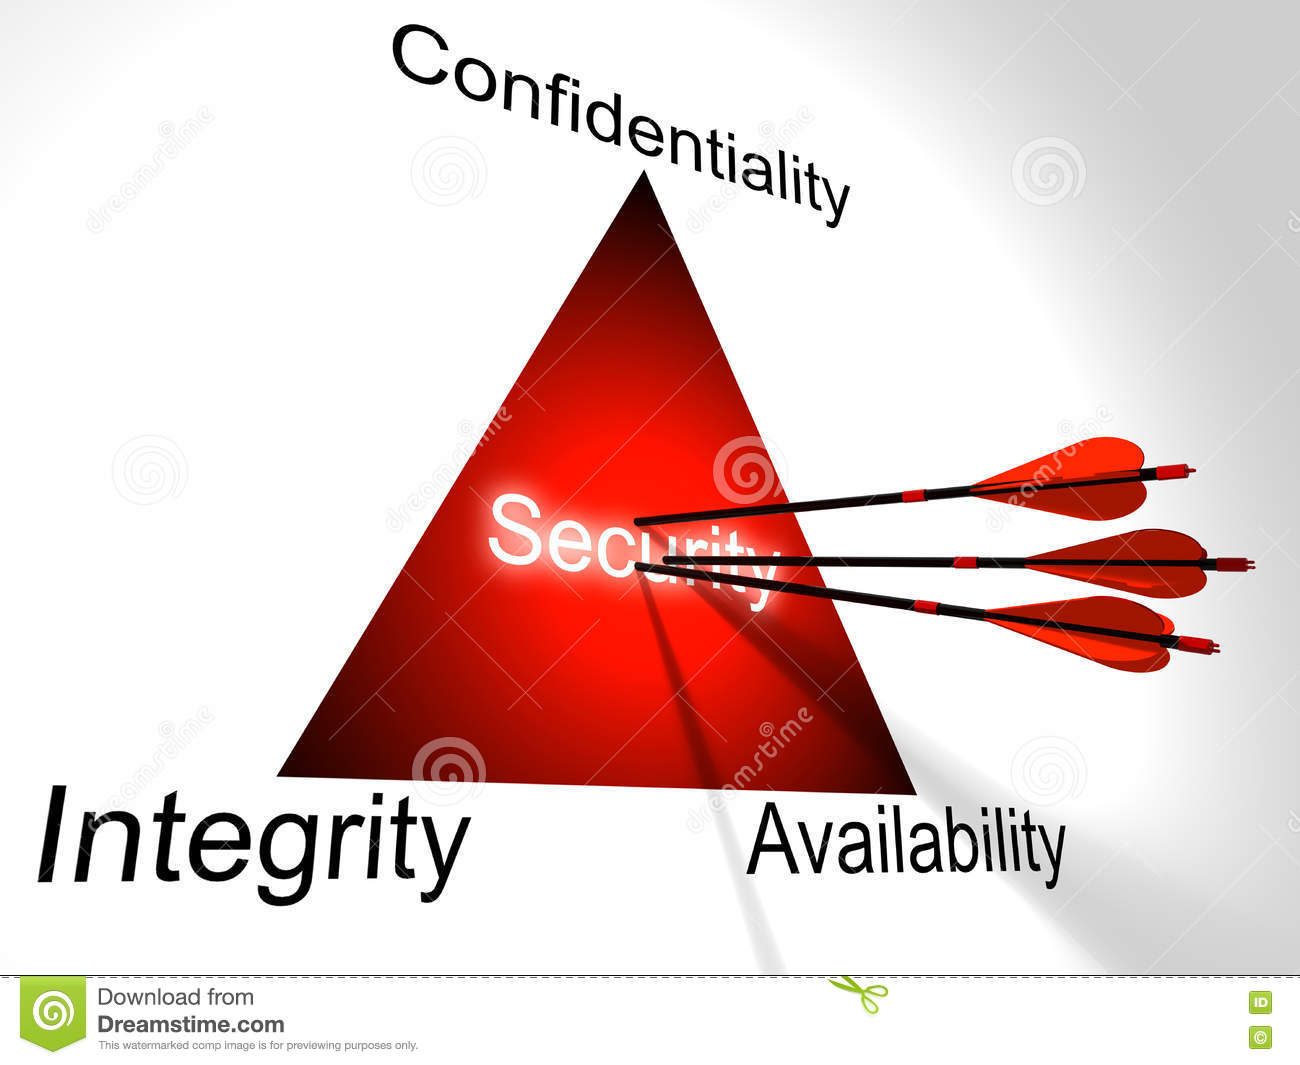 Can Threesome security confidentiality integrity availability